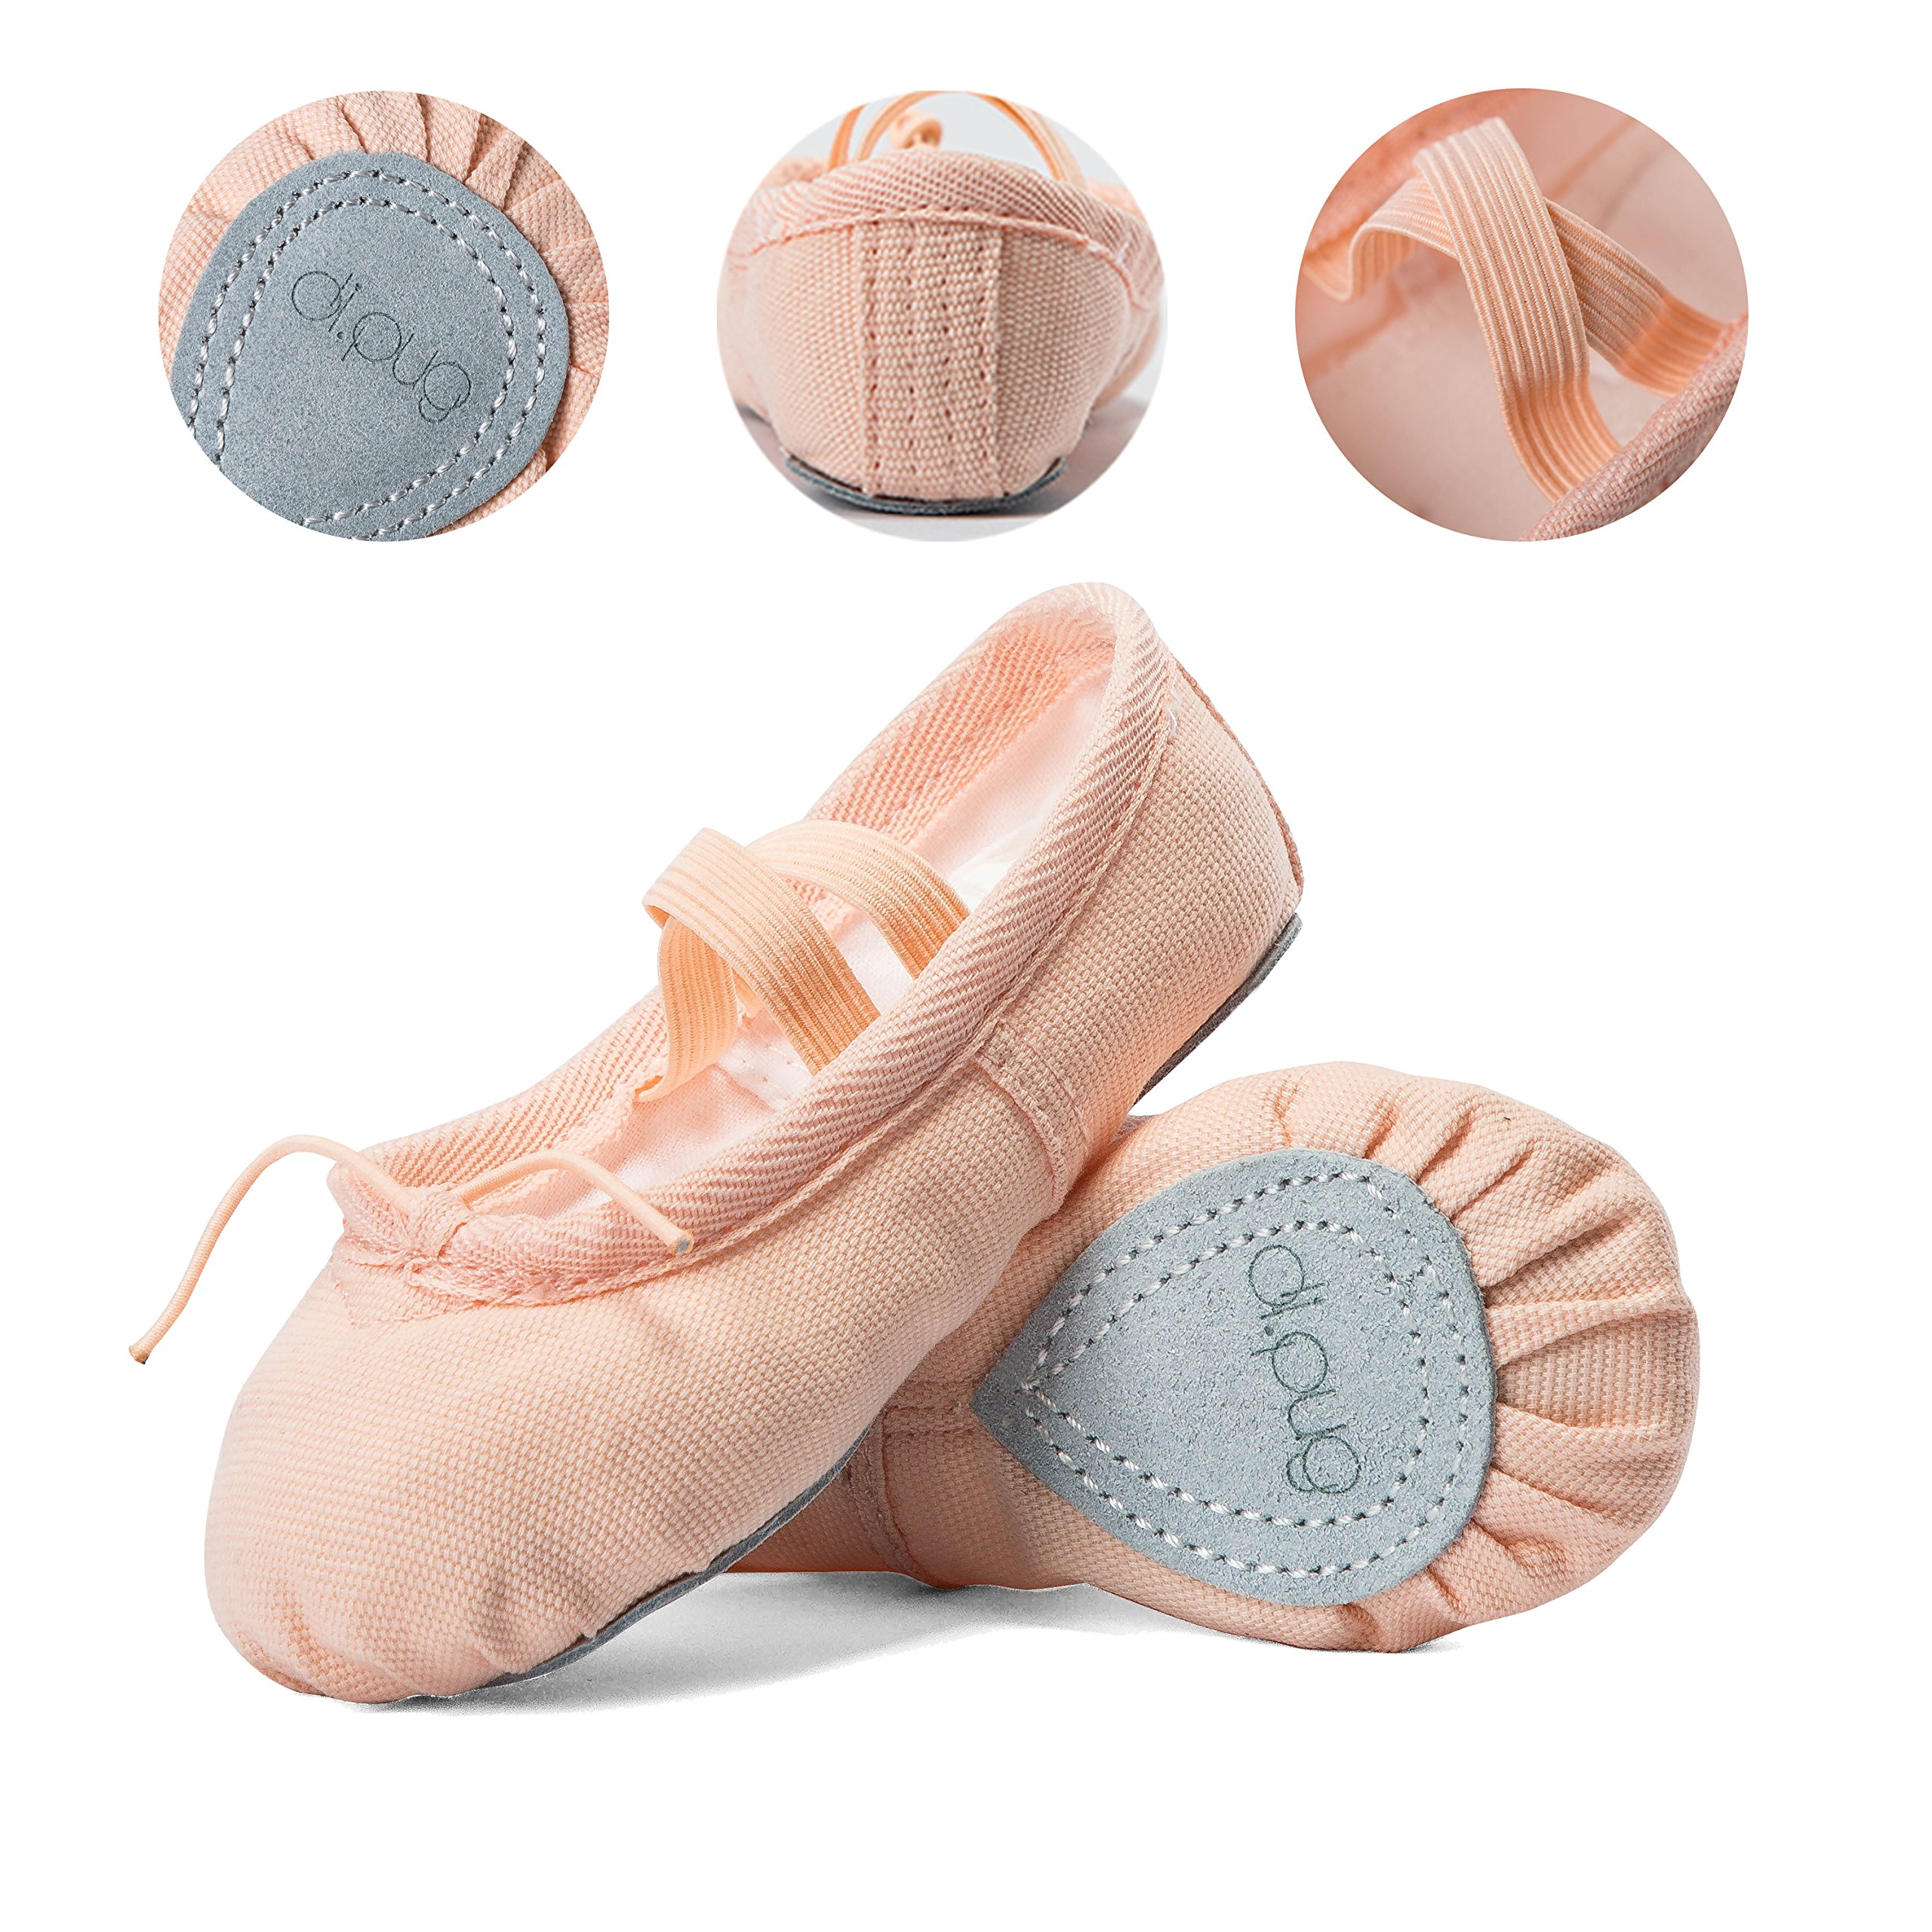 Ballet Shoes Ballet Slippers for Girls Toddlers Canvas Dance Shoes Yoga Shoe (Toddler/Little Kid/Big Kid/Women) (US 8M Toddler, Ballet Pink)